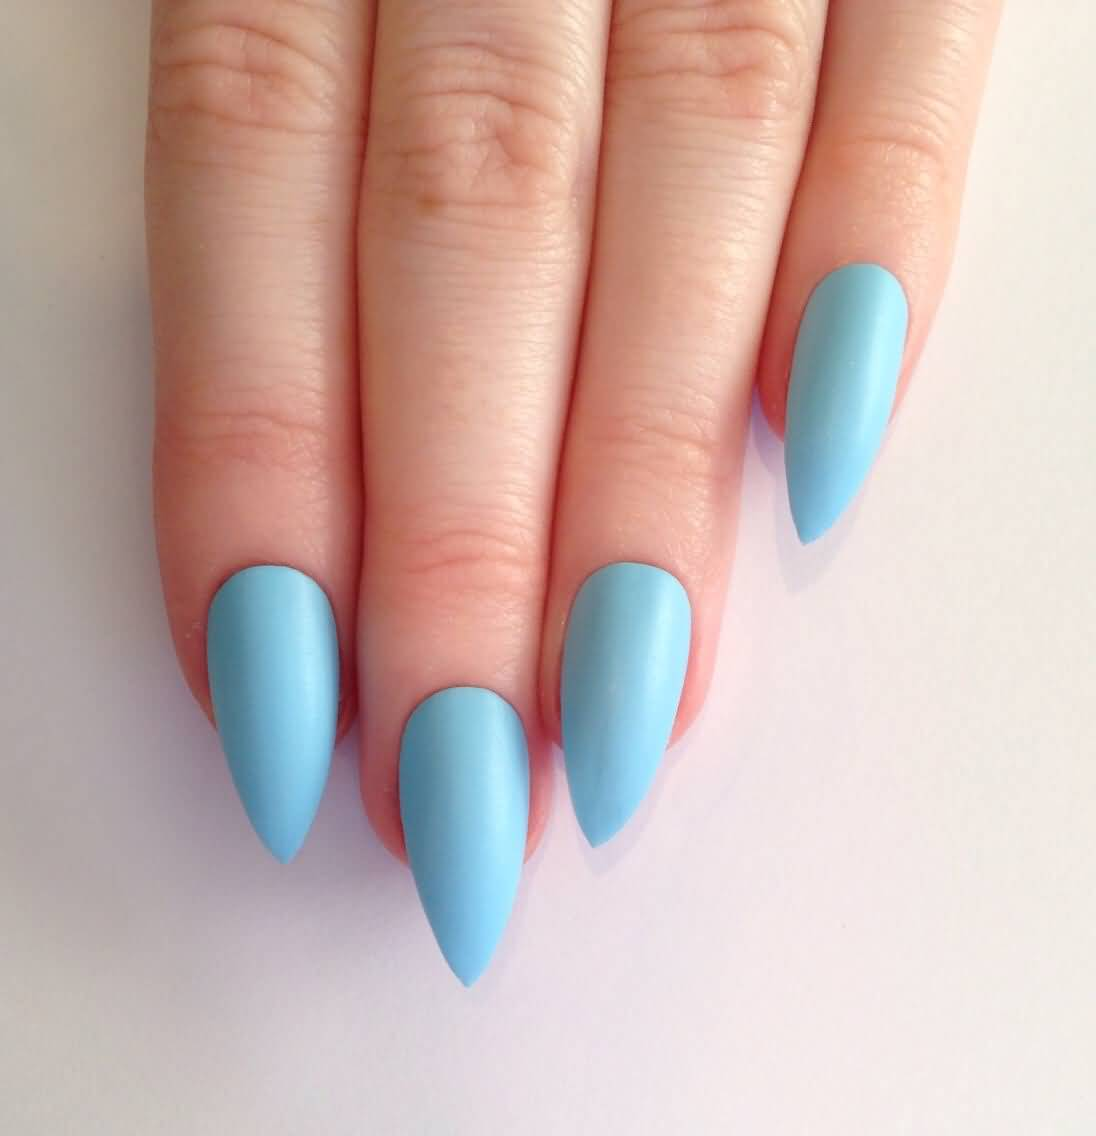 simple & easy nail designs ideas 68